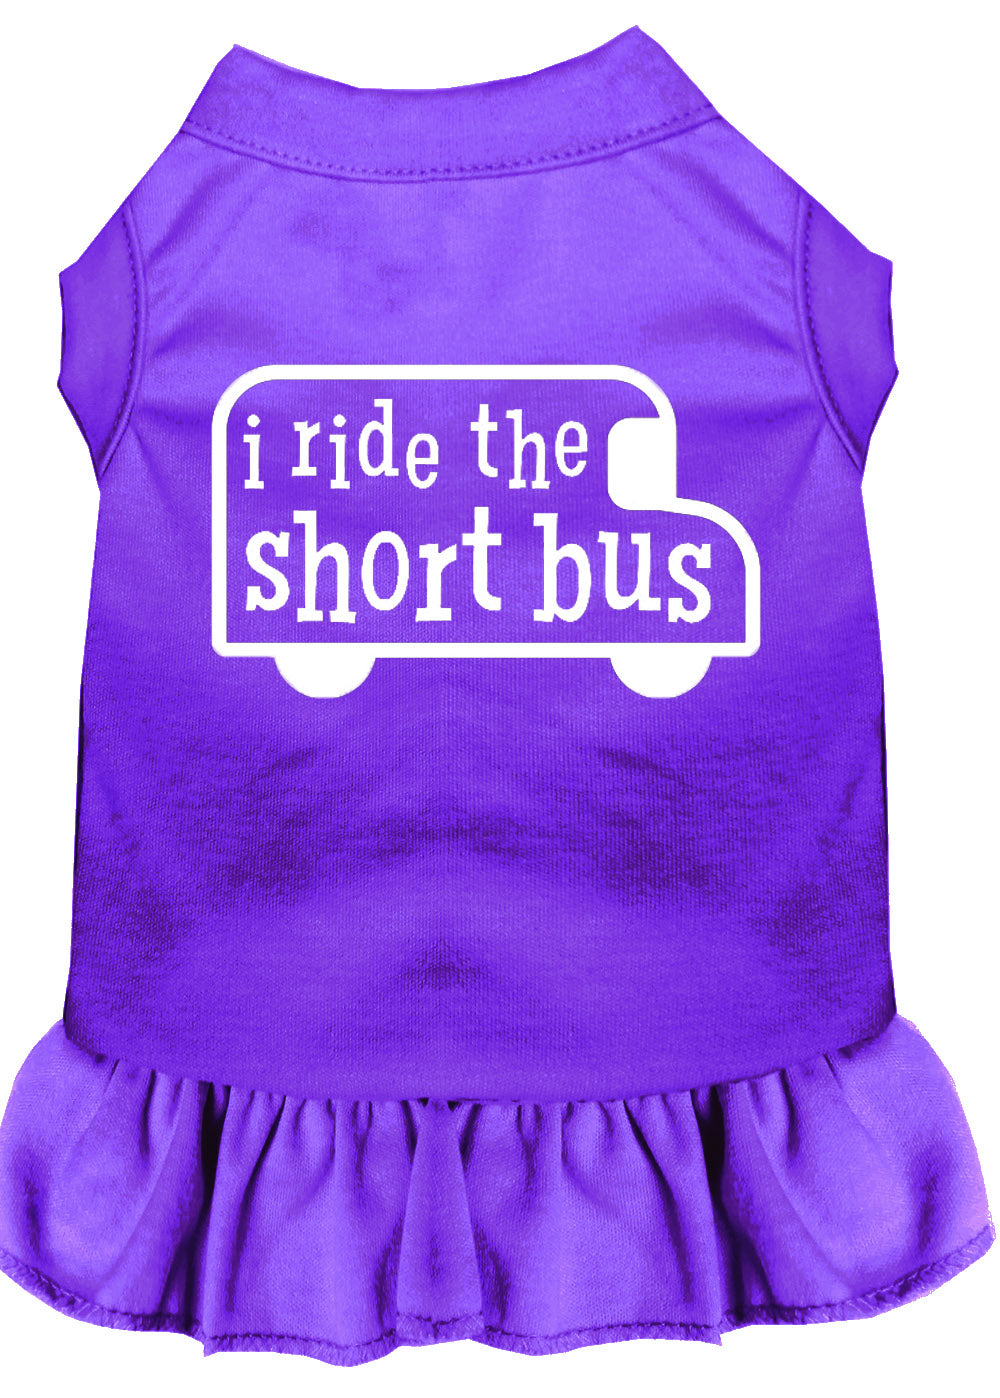 I Ride The Short Bus Screen Print Dress Purple